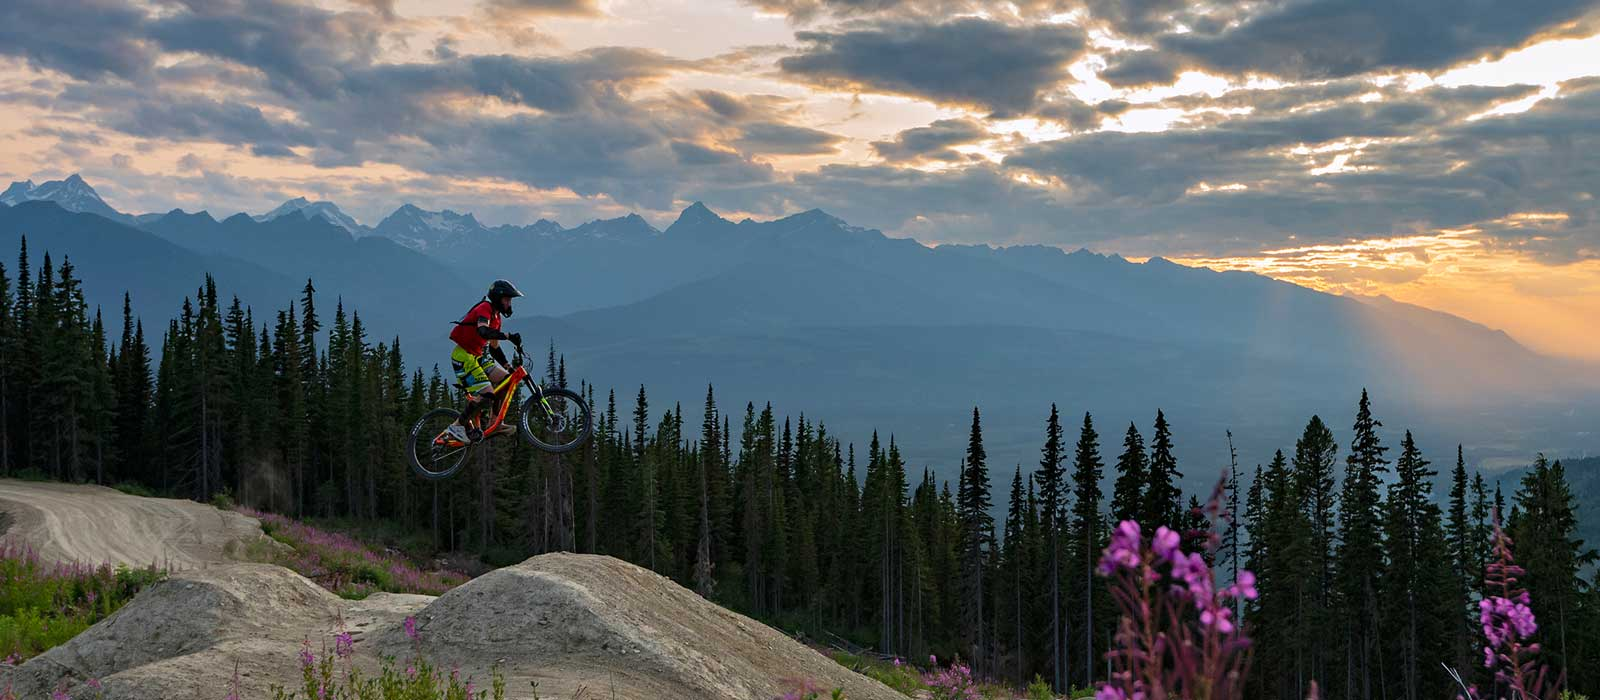 Mountain bikers doing jumps in Valemount Mountain Bike Park